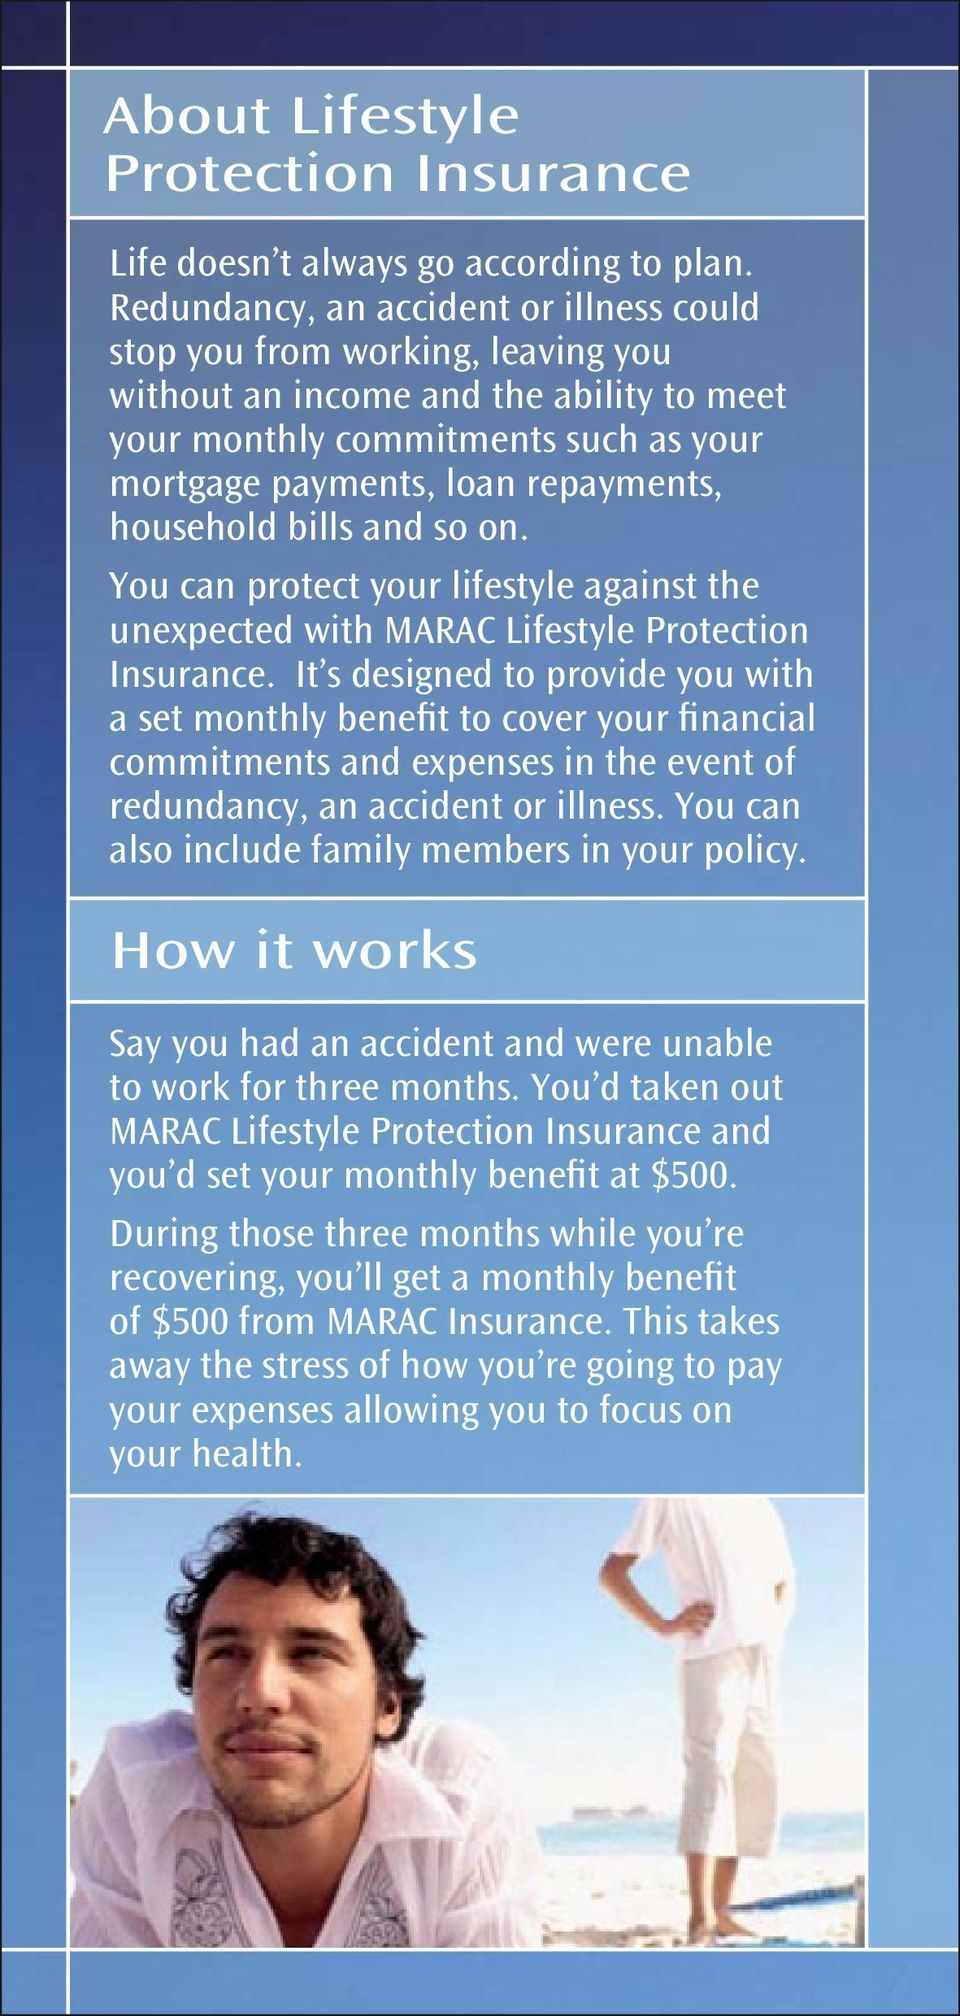 household bills and so on. You can protect your lifestyle against the unexpected with MARAC Lifestyle Protection Insurance.